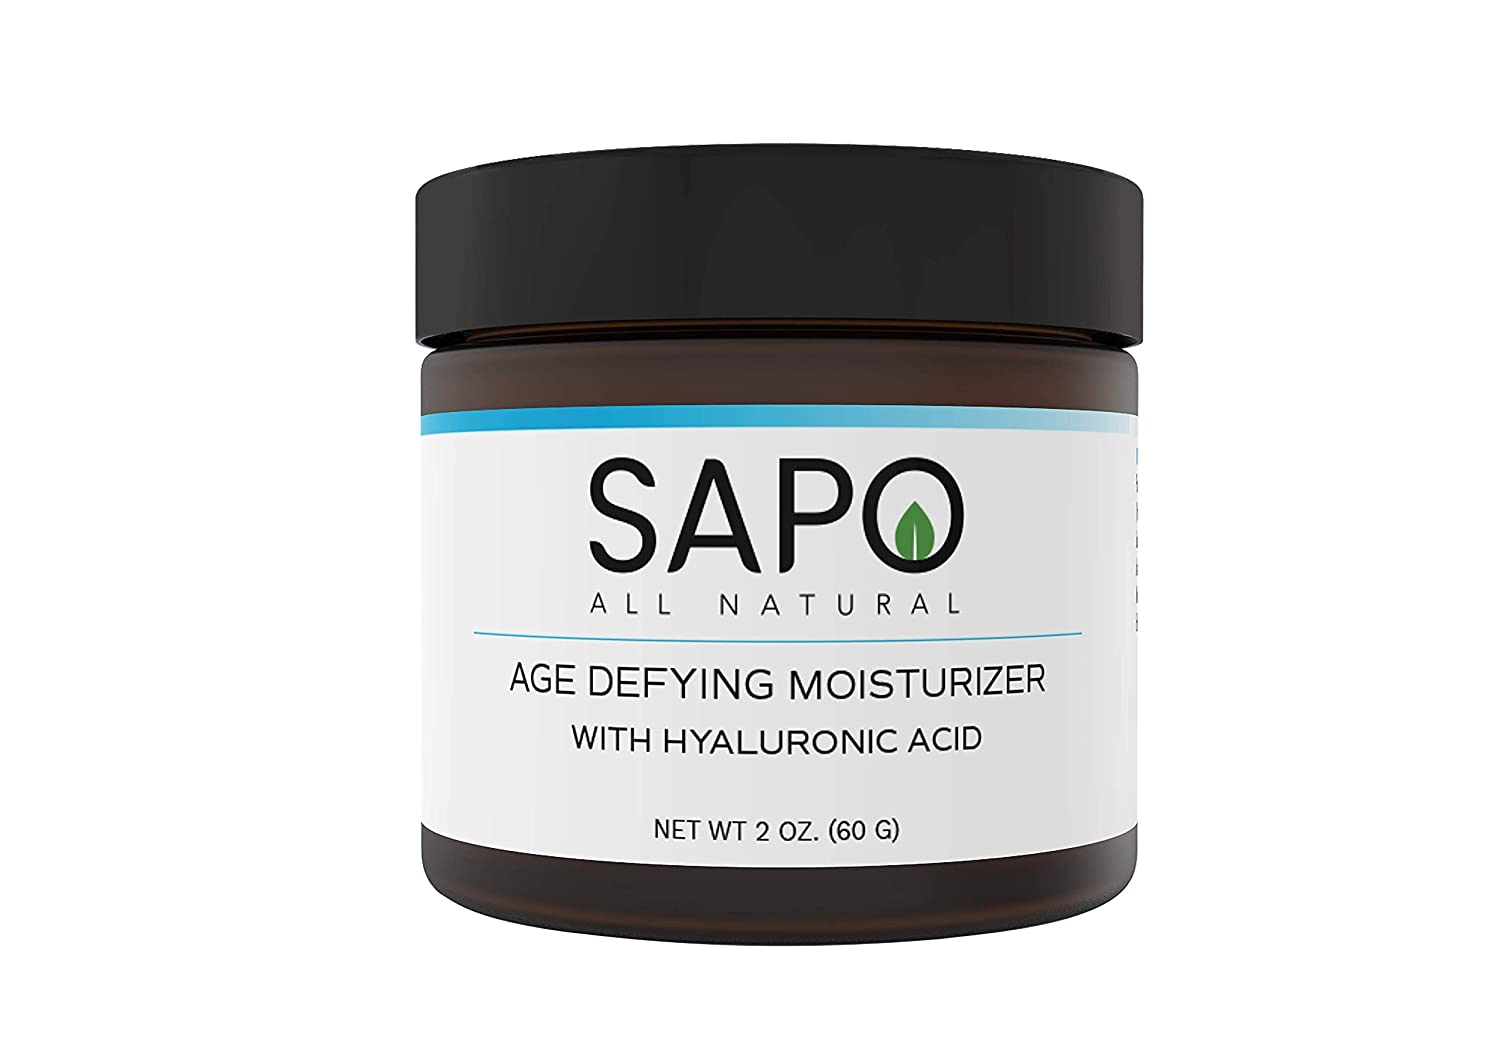 Sapo All Natural Moisturizer with Triple Peptides, Aloe Vera, Vitamin B, C, E and Hyaluronic Acid. A Face Moisturizer that Hydrates and Protects Your Skin for a More Brighter and Youthful Appearance